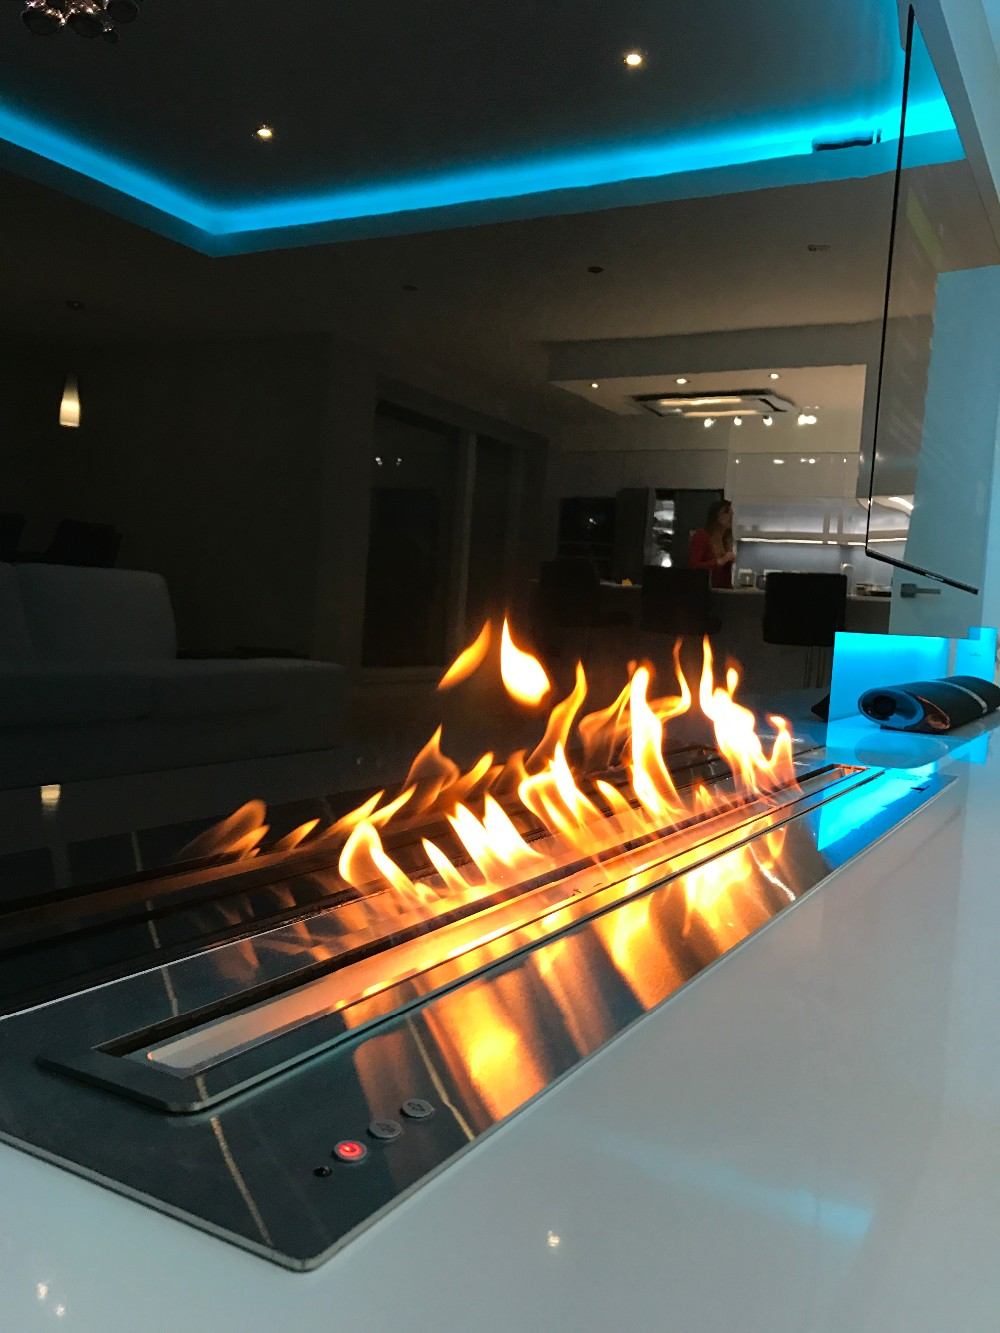 Hot Sale 18 Inches Wifi Automatic Intelligent Smart Bio Ethanol Fireplace Indoor Wall